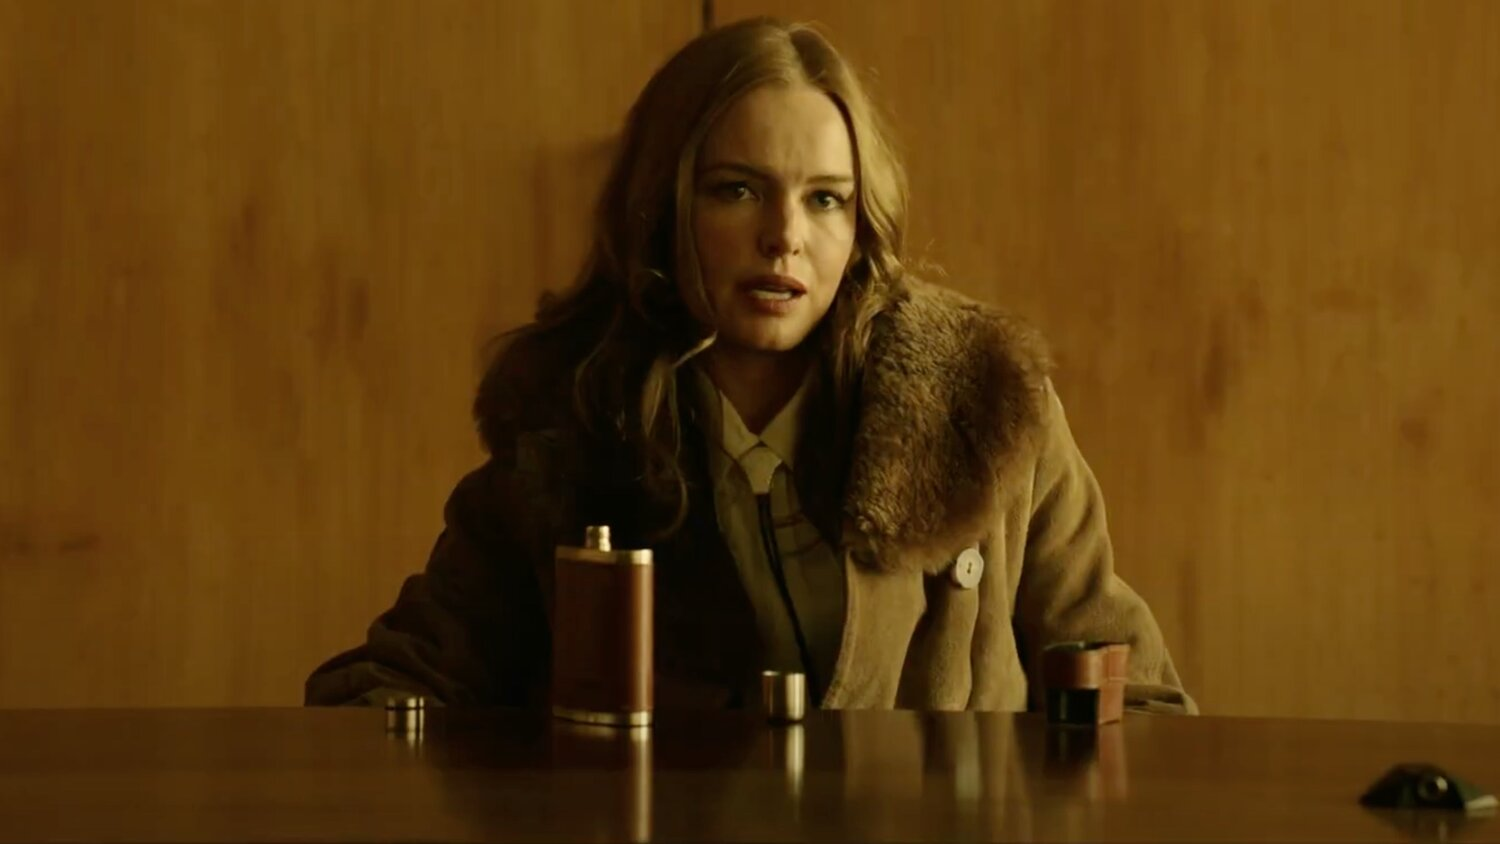 THE DEVIL HAS A NAME Trailer with Kate Bosworth and Edward James Olmos – 'Greed Is Poison and Poison Spreads'